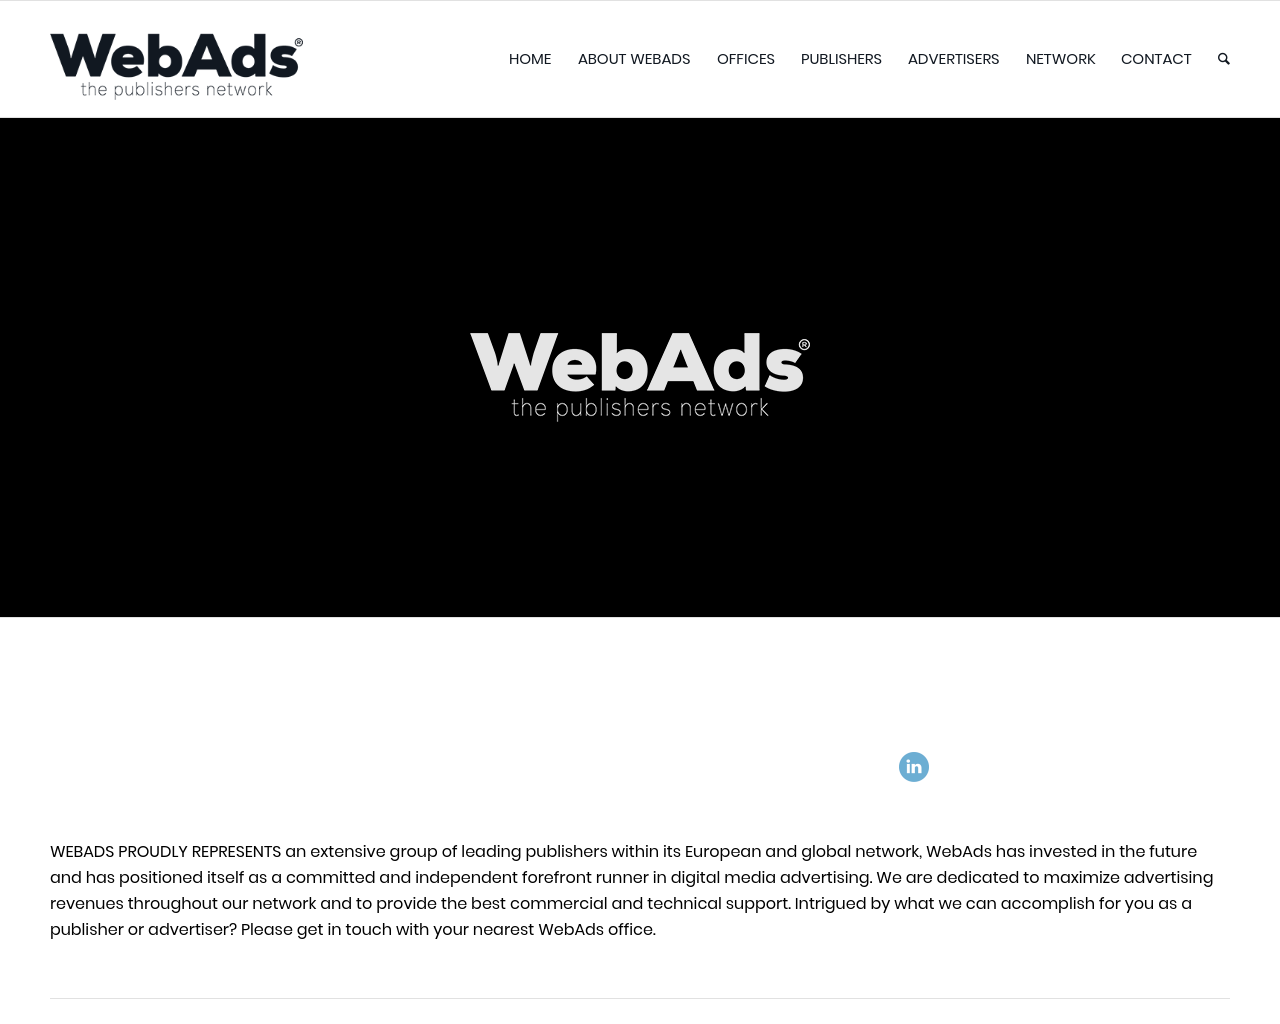 WebAds-Advertising-Reviews-Pricing